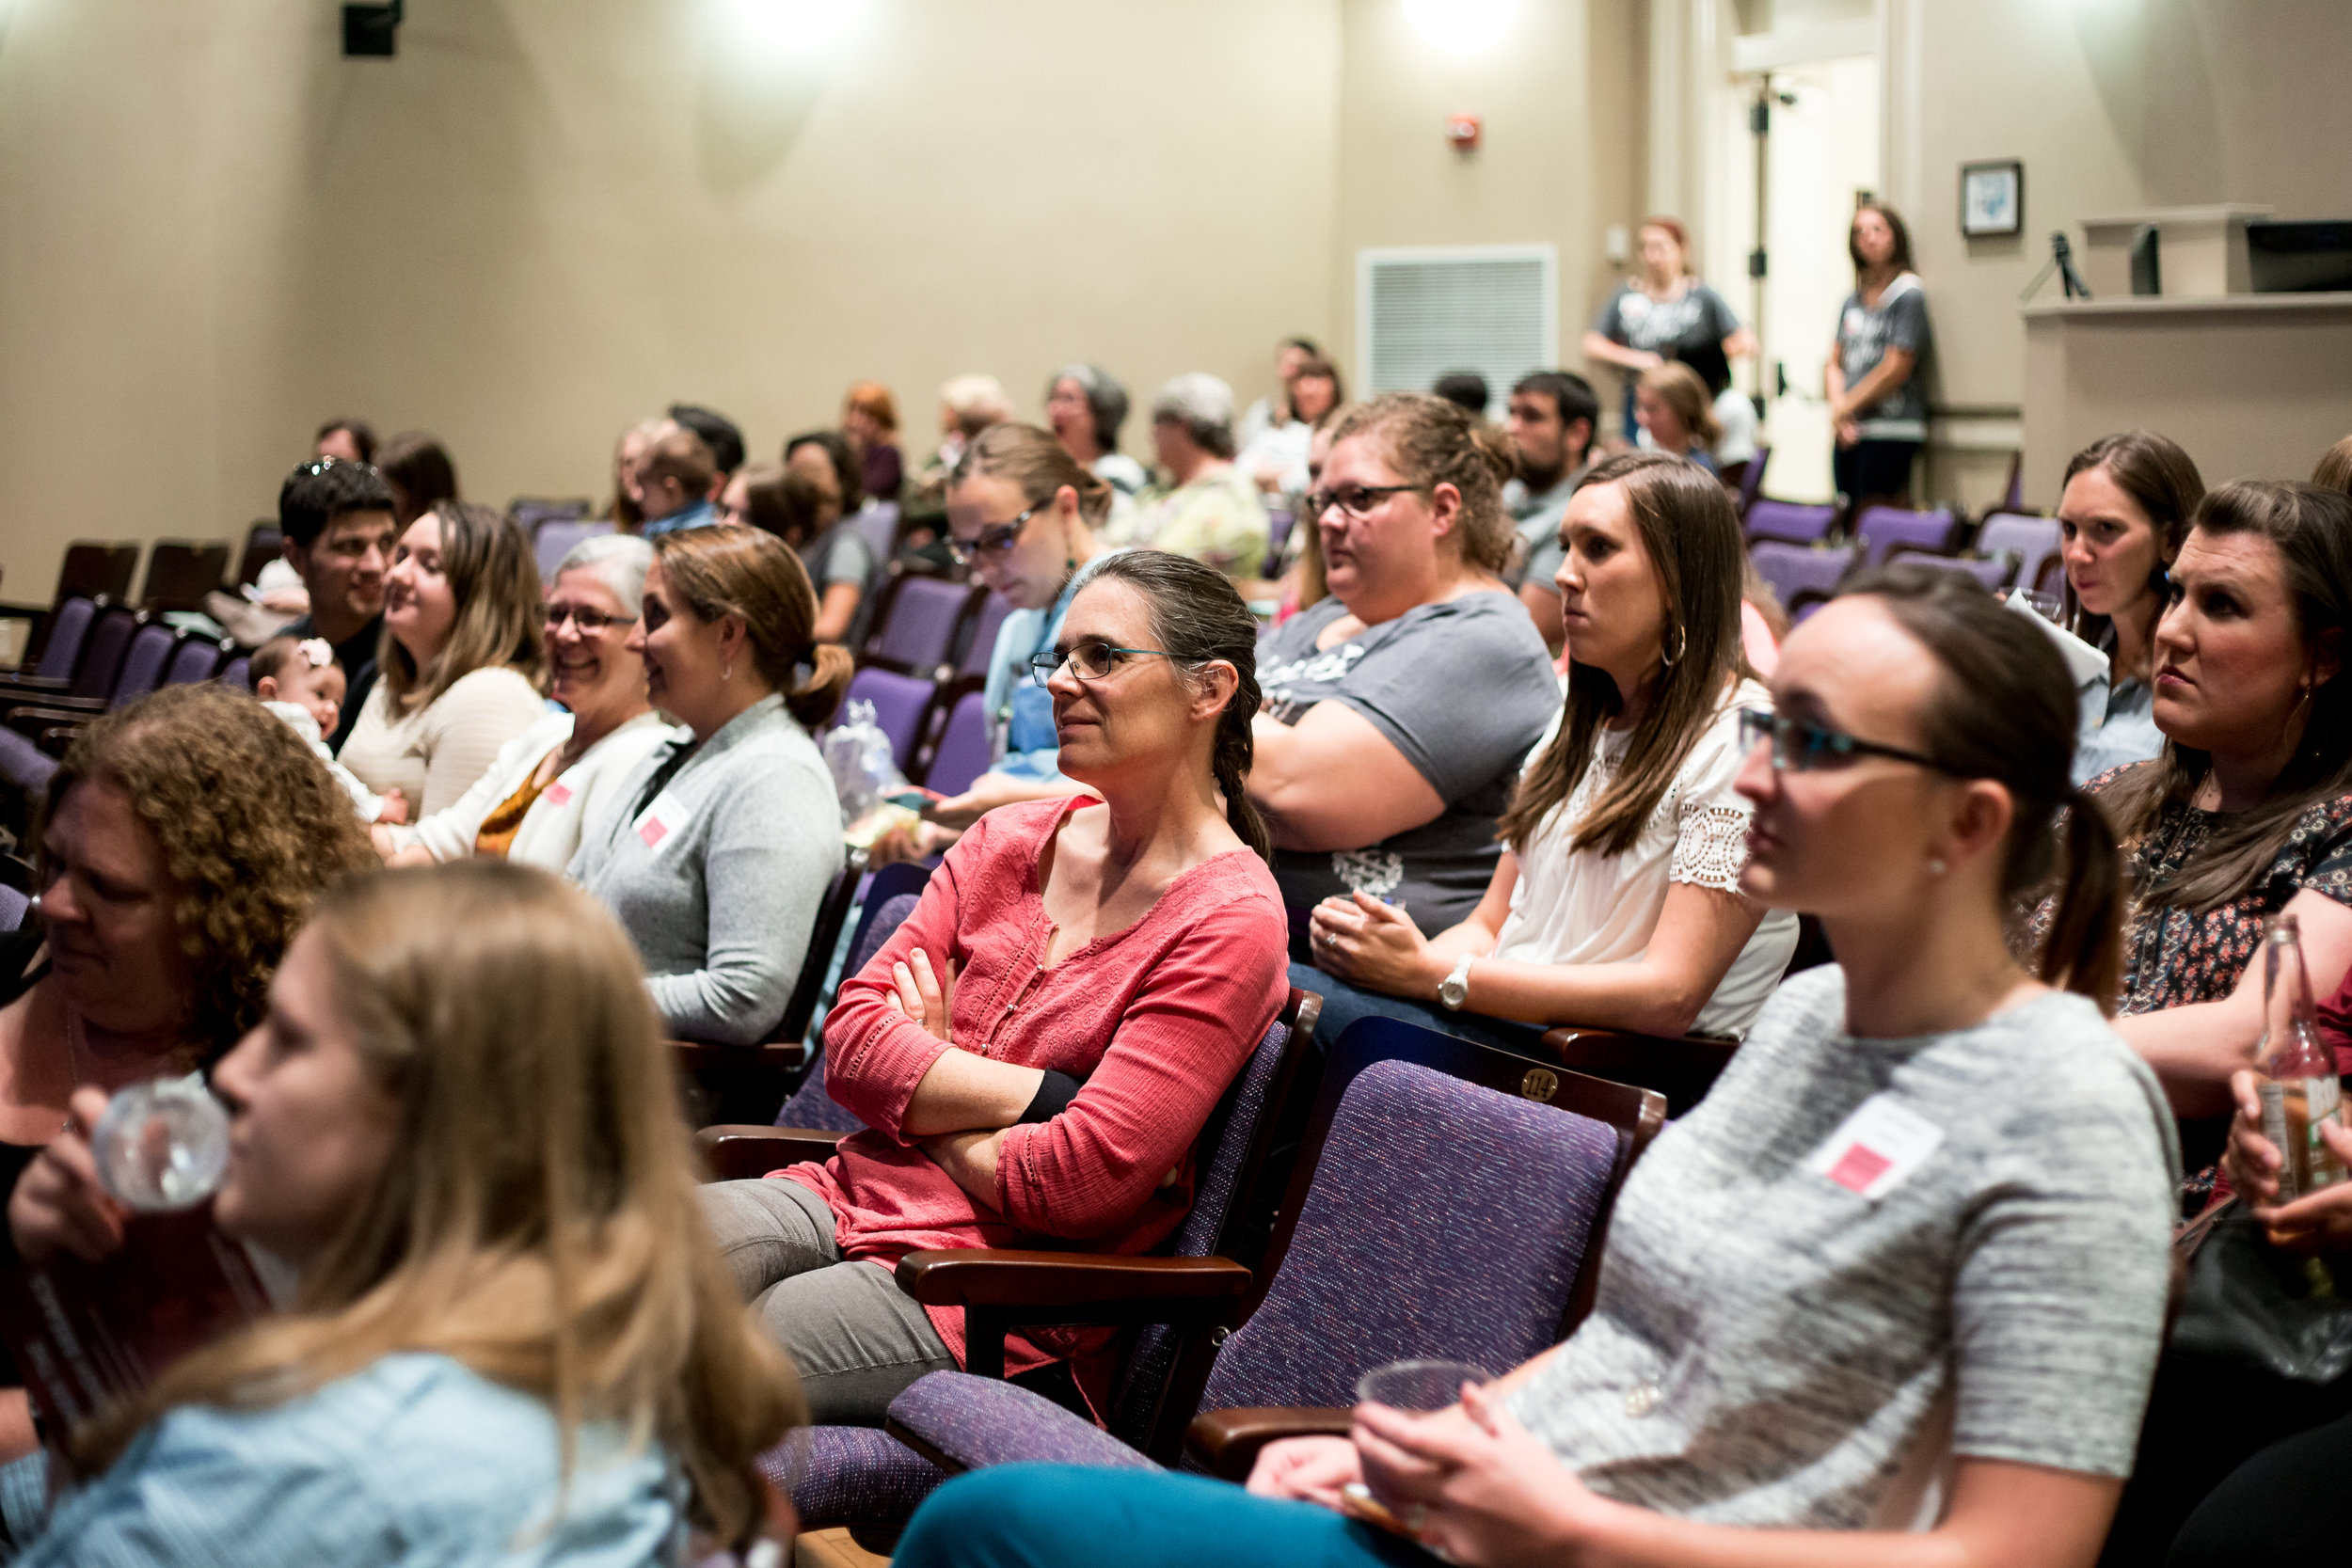 Community partners, Ashley Graham LCSW, Leslie Payne CPM, Erin Baird CNM, Lisa Neumann CNM , Amy Rugh LPC, Katie Page CNM, and more sit among brave men and women while volunteer staff lovingly watch over the crowd. © Christi Stafford Photography